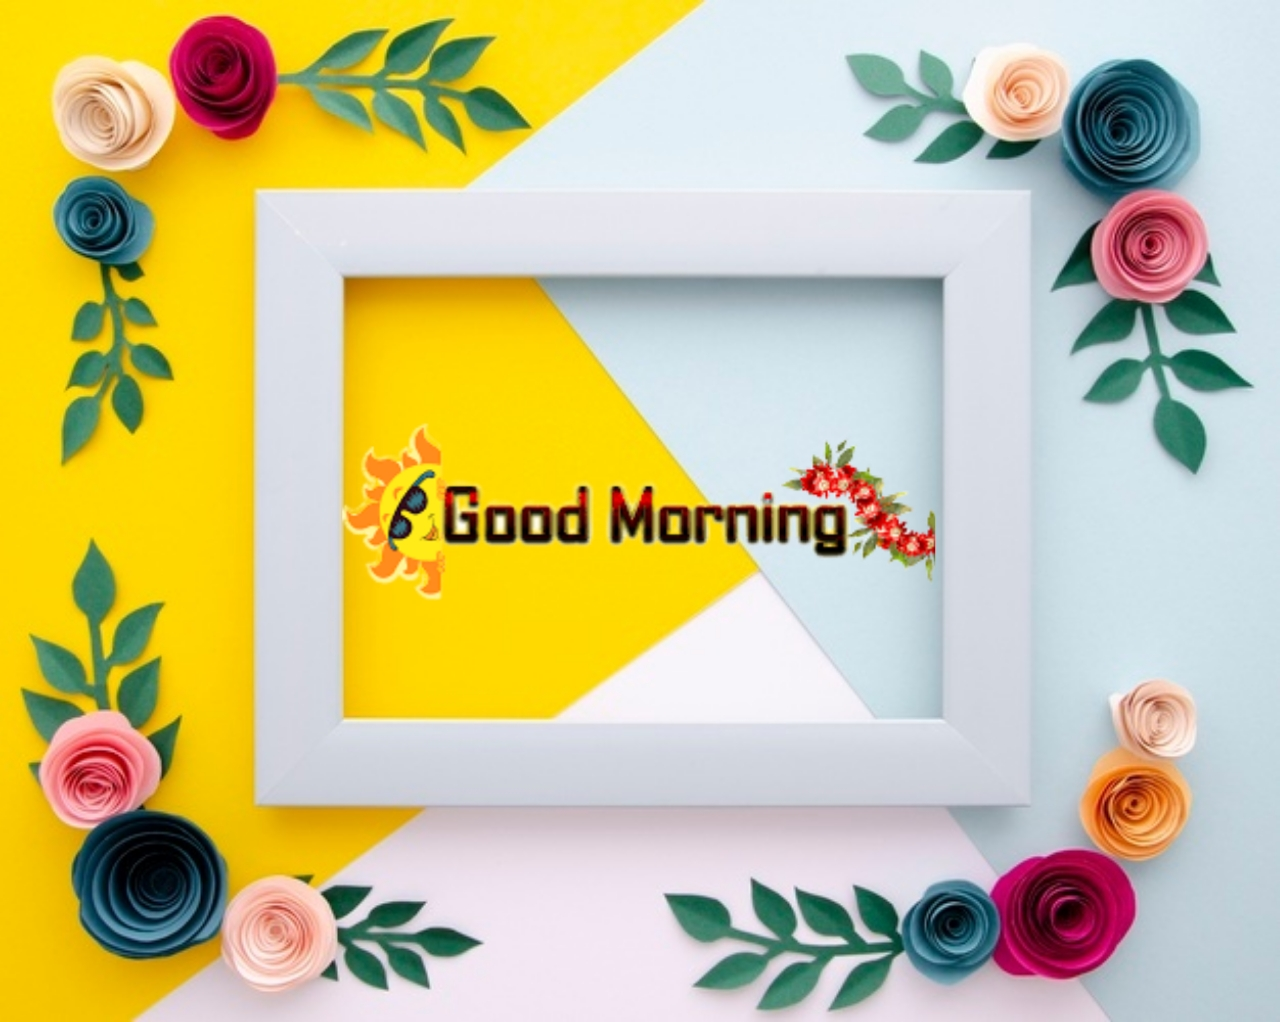 Good Morning Have A Nice Day Pictures Photos Images